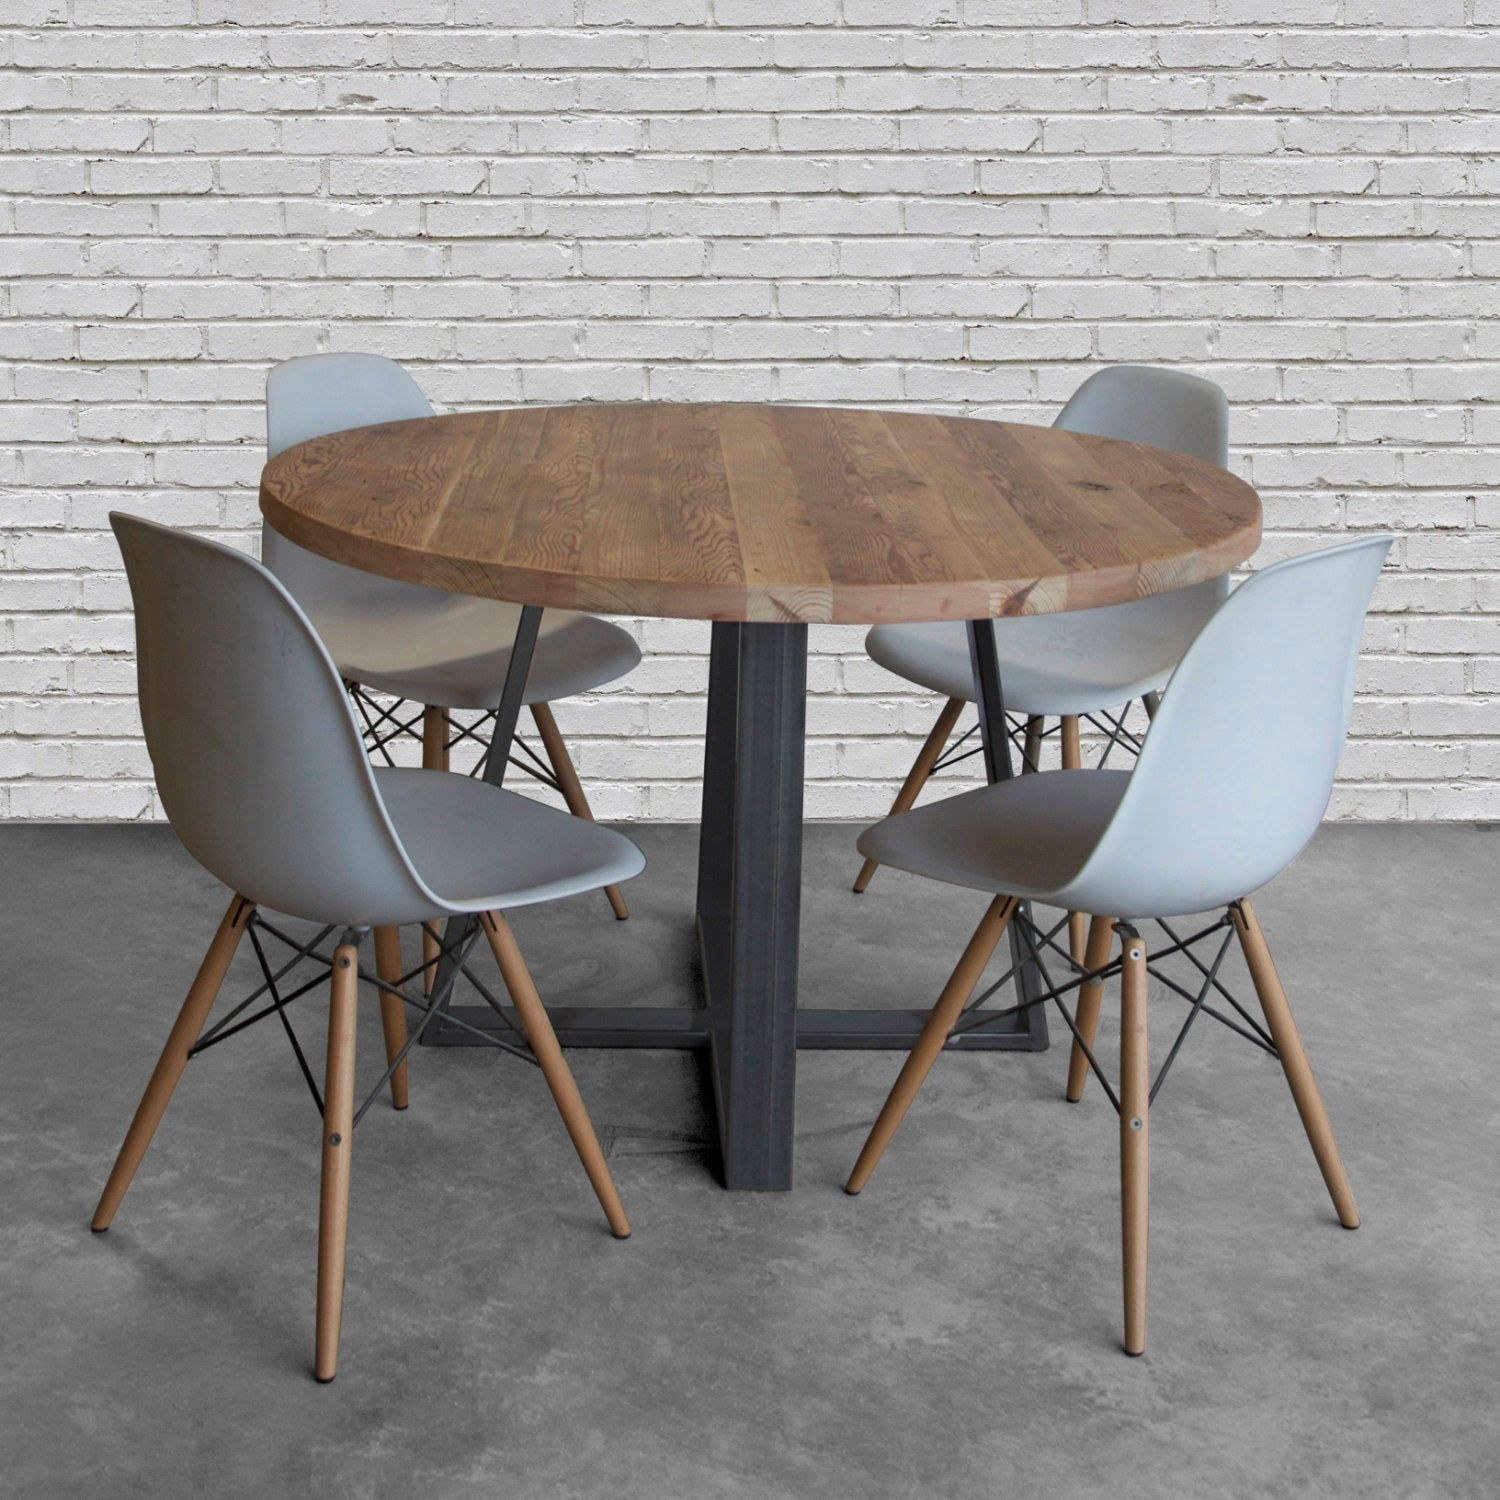 Round Top Pedestal Table In Reclaimed Wood And Steel Legs In Your Choice Of Color Size And Finish Kitchen Table Wood Round Wood Table Round Farmhouse Table